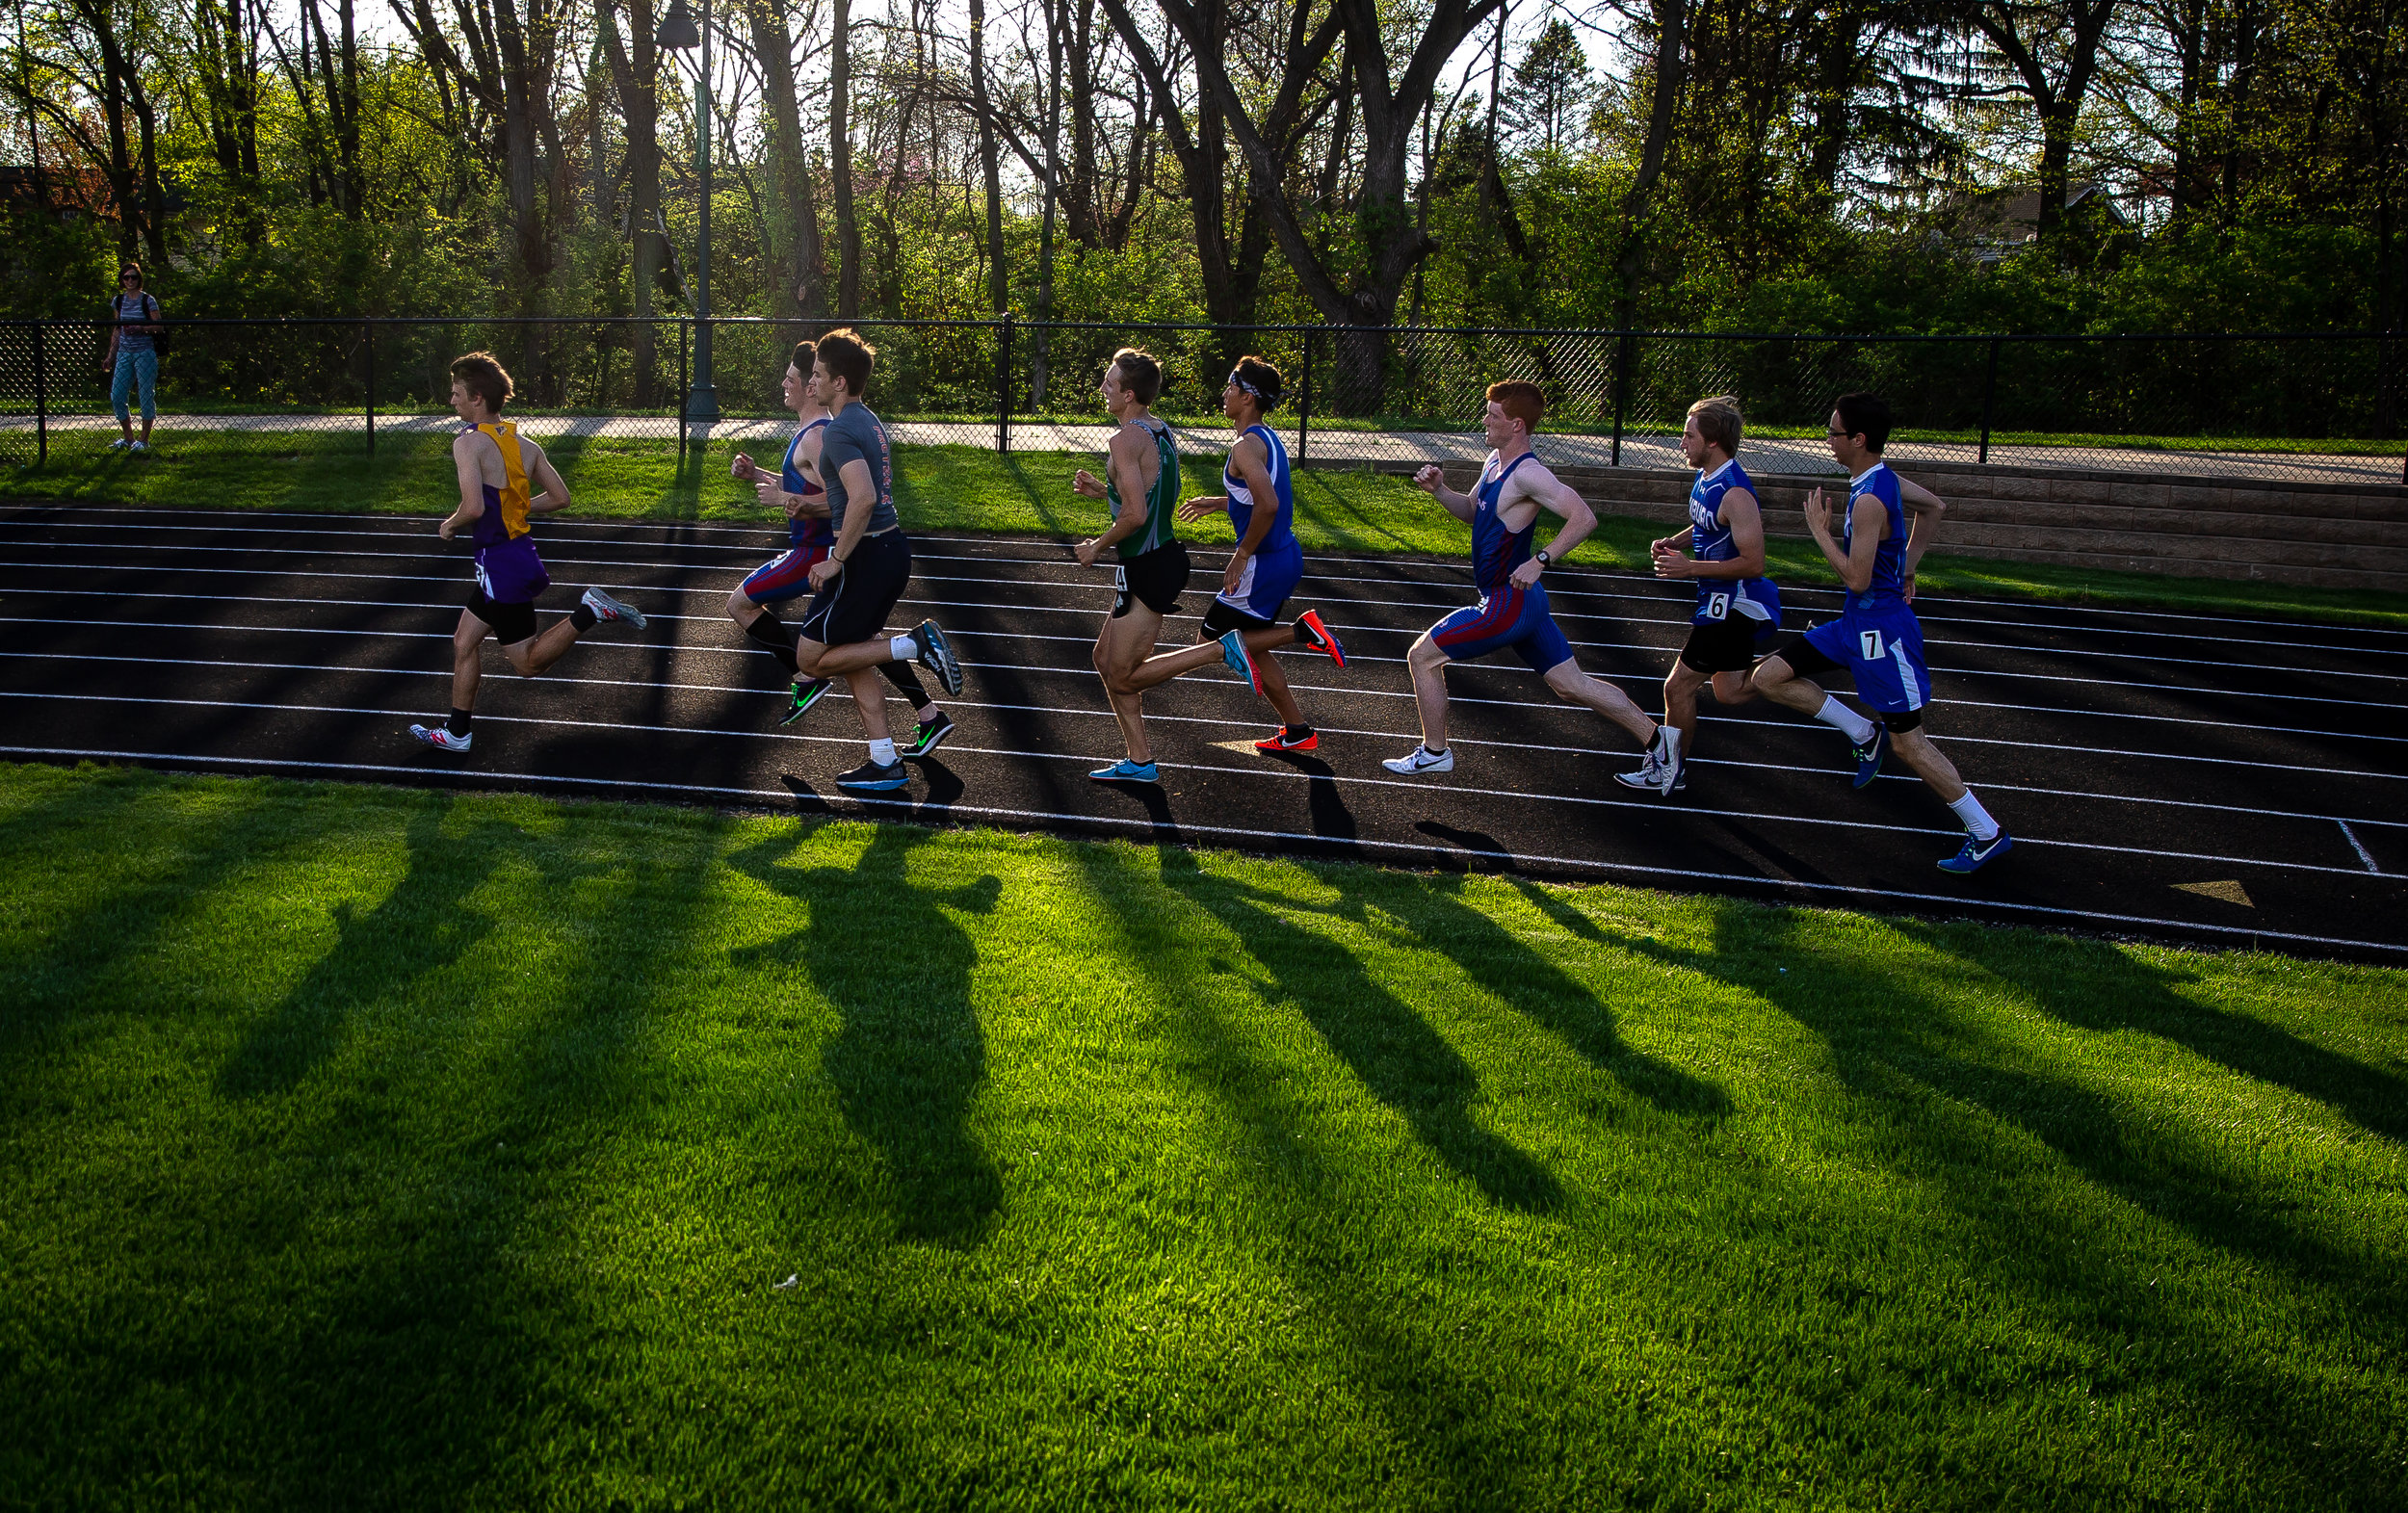 Runners round the turn on the start of the Boys 800m Run during the Sangamon County Track & Field Meet at Athens High School, Friday, May 4, 2018, in Athens, Ill. [Justin L. Fowler/The State Journal-Register]